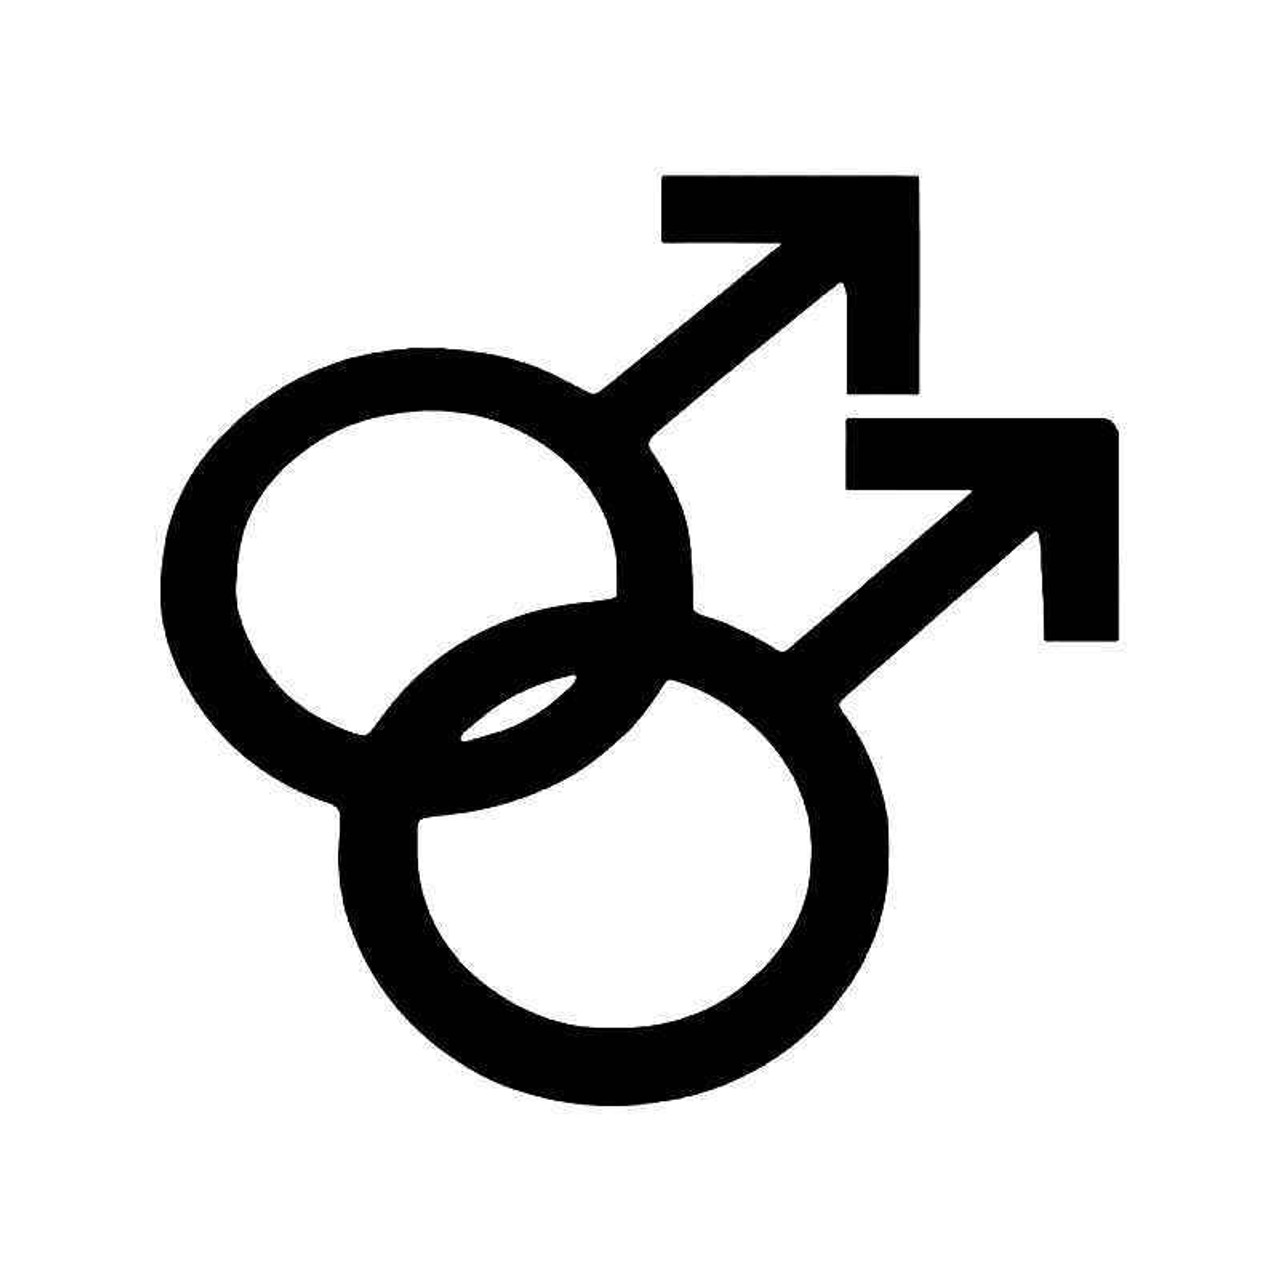 Gay Pride Male Symbol Vinyl Sticker